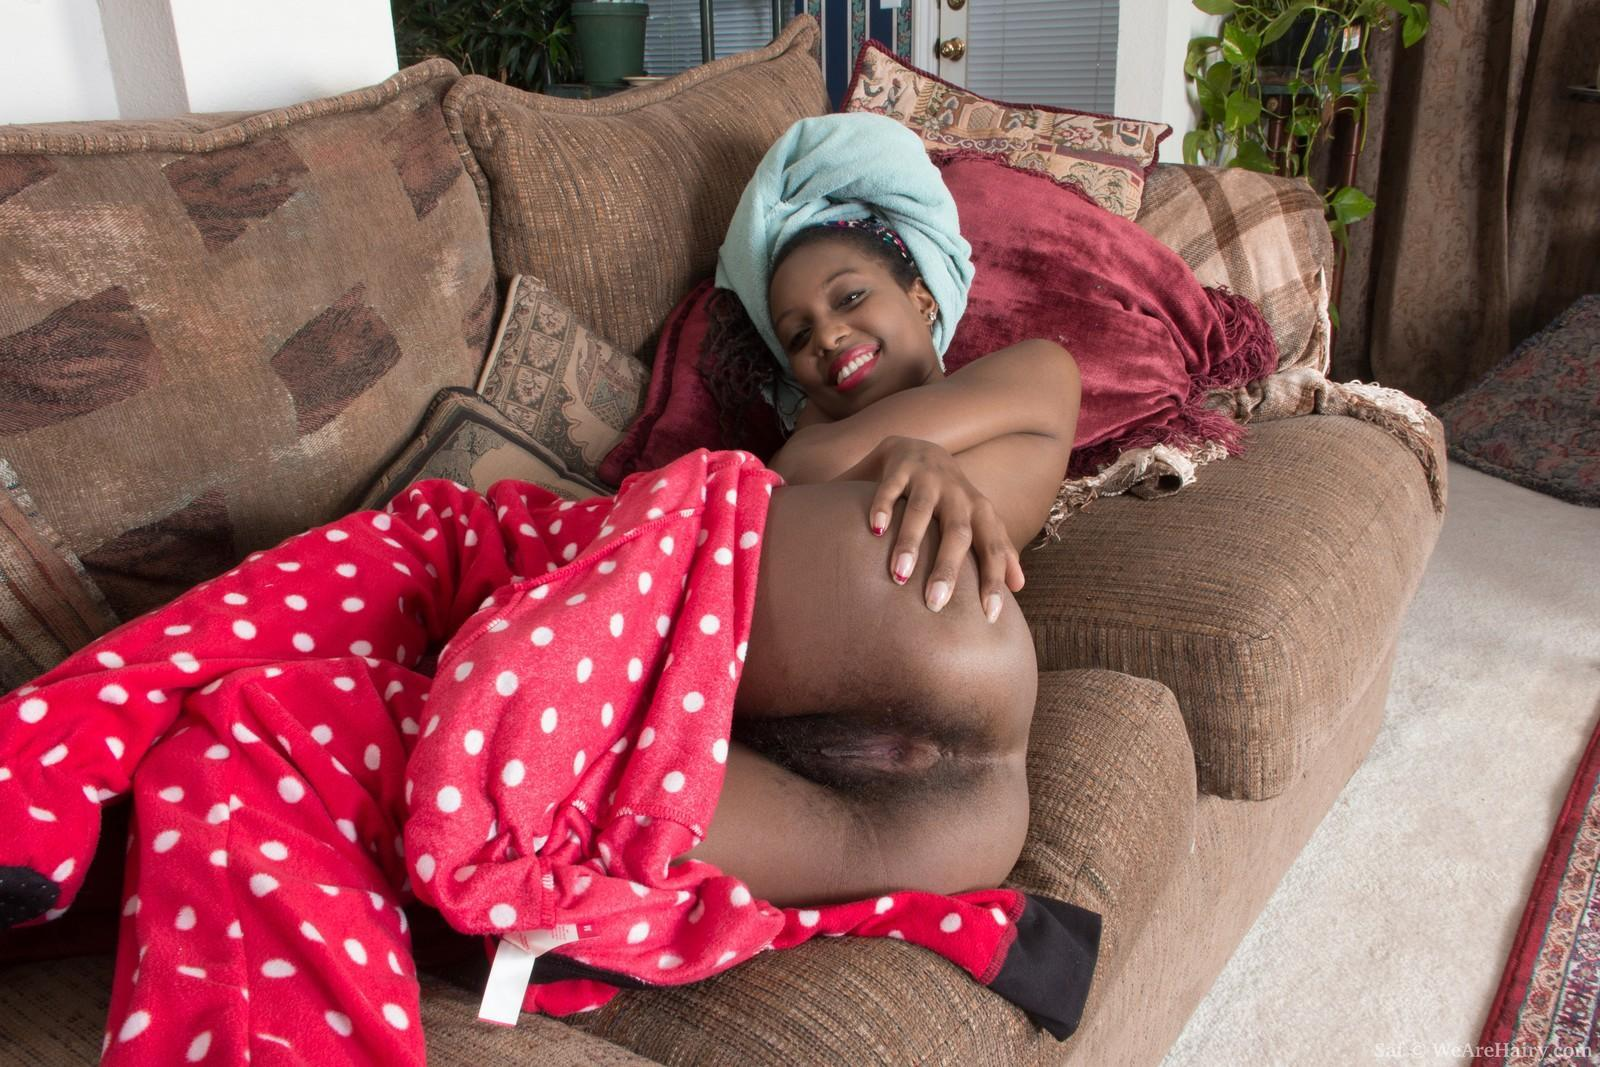 Ebony first-timer with petite floppy tits revealing hairy ebony twat on couch